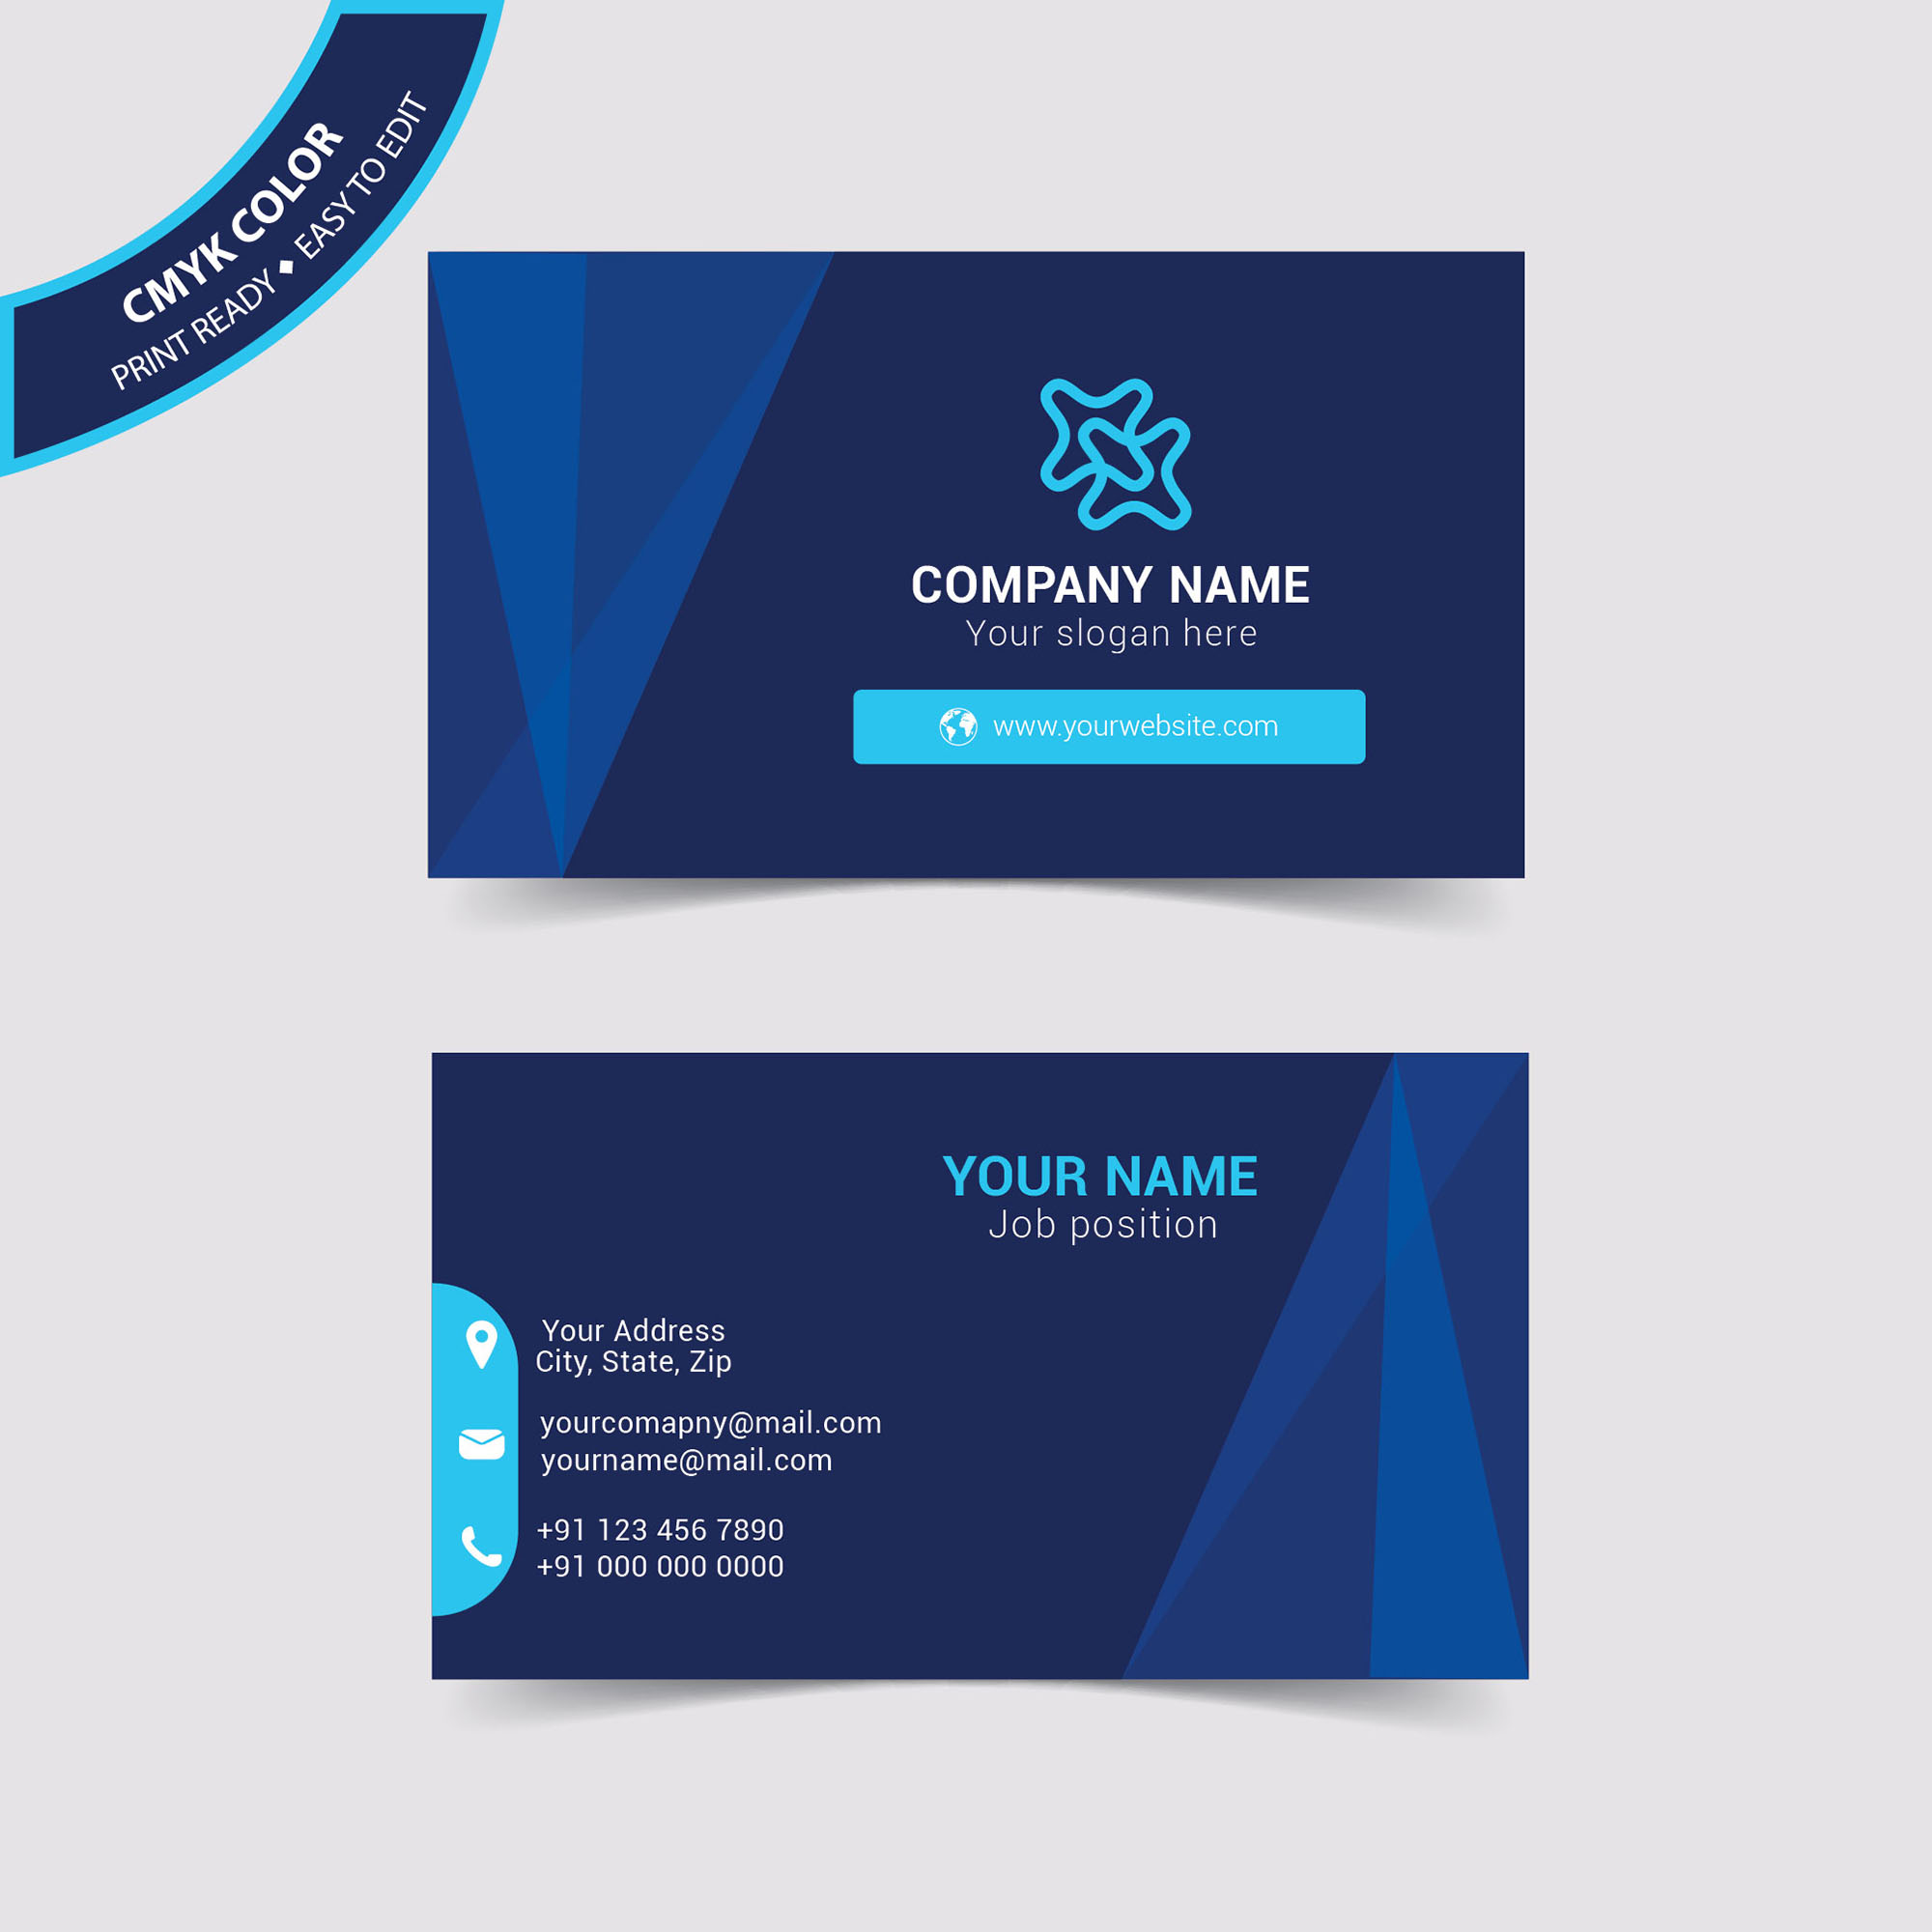 Blue creative business card design free download wisxi business card business cards business card design business card template design templates wajeb Choice Image